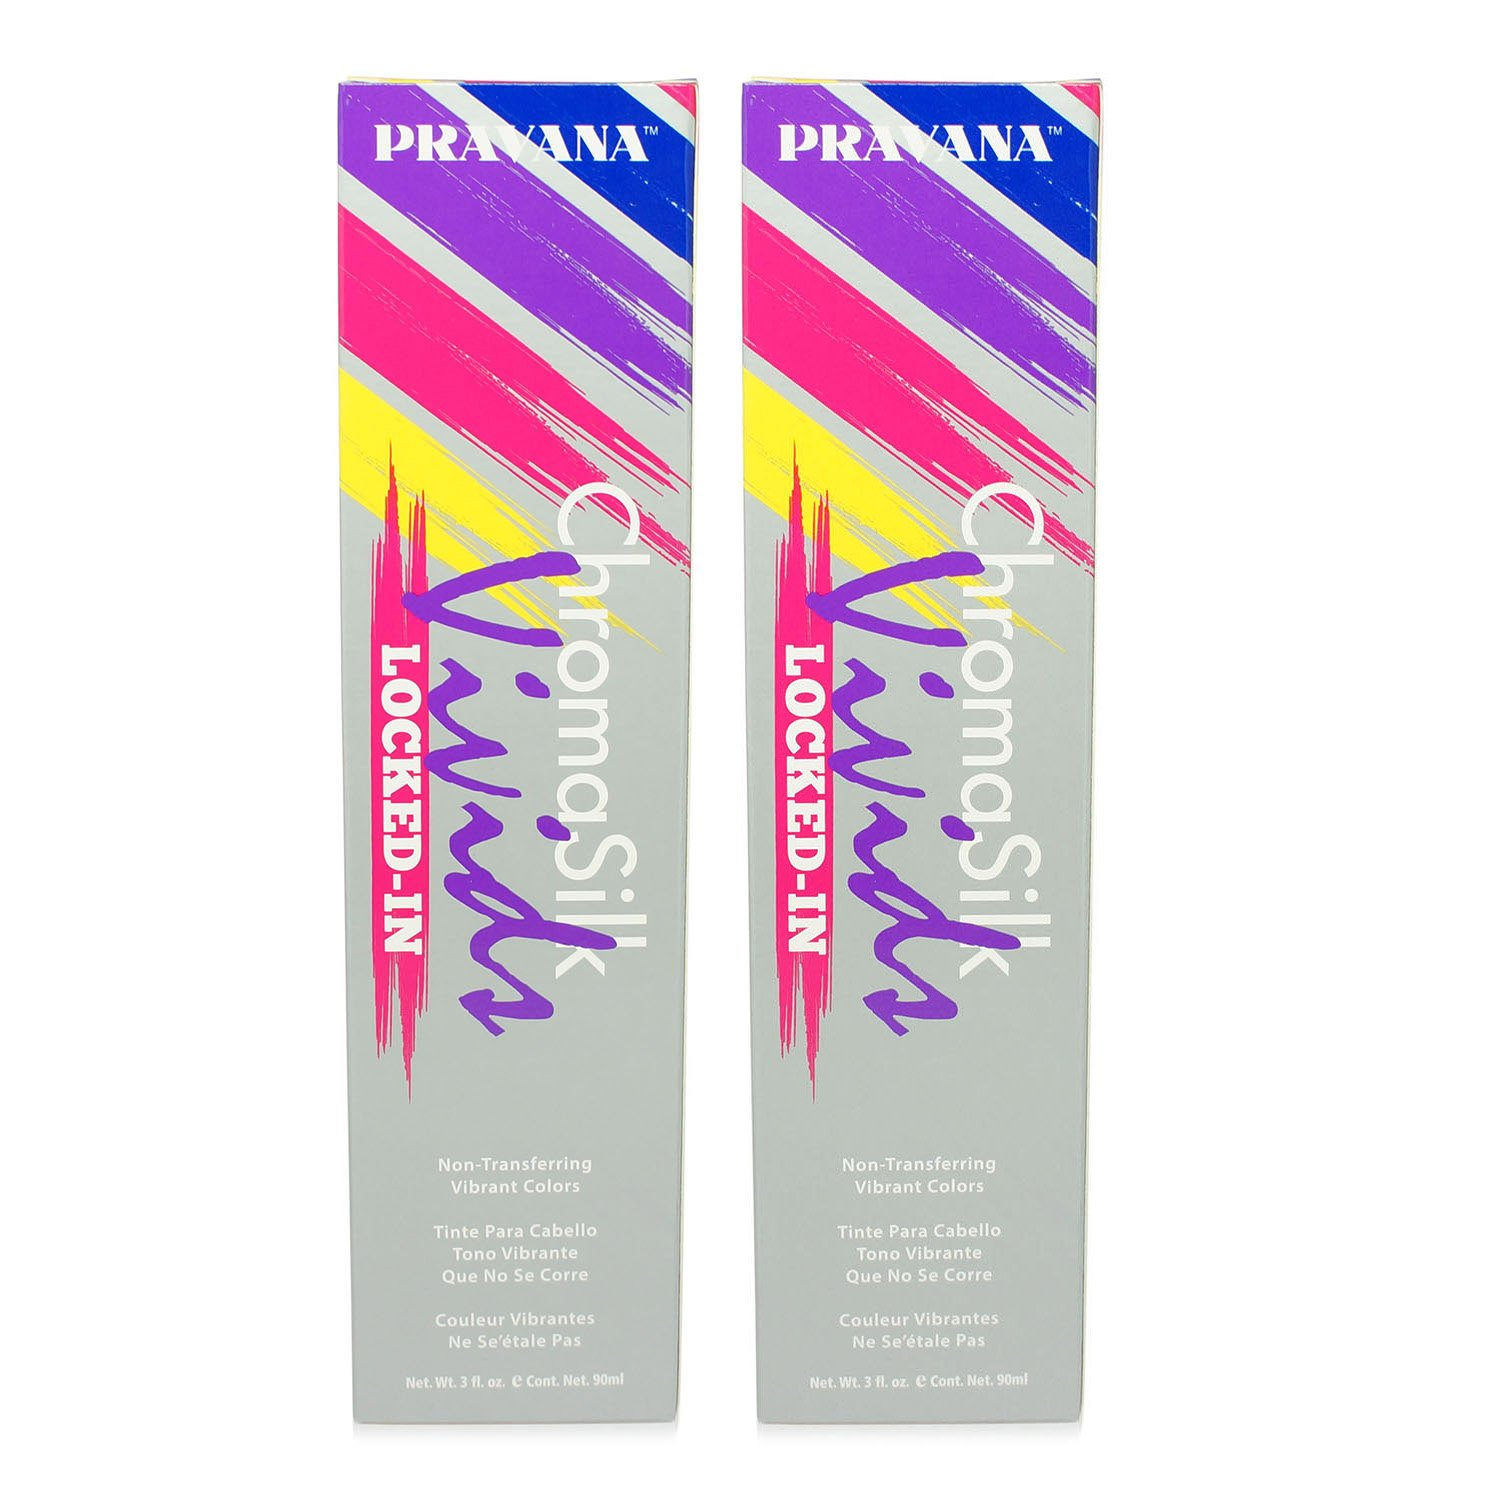 Pravana ChromaSilk Vivids (Locked in Blue), 3 Fl 0z - 2 Pack by Pravana (Image #4)